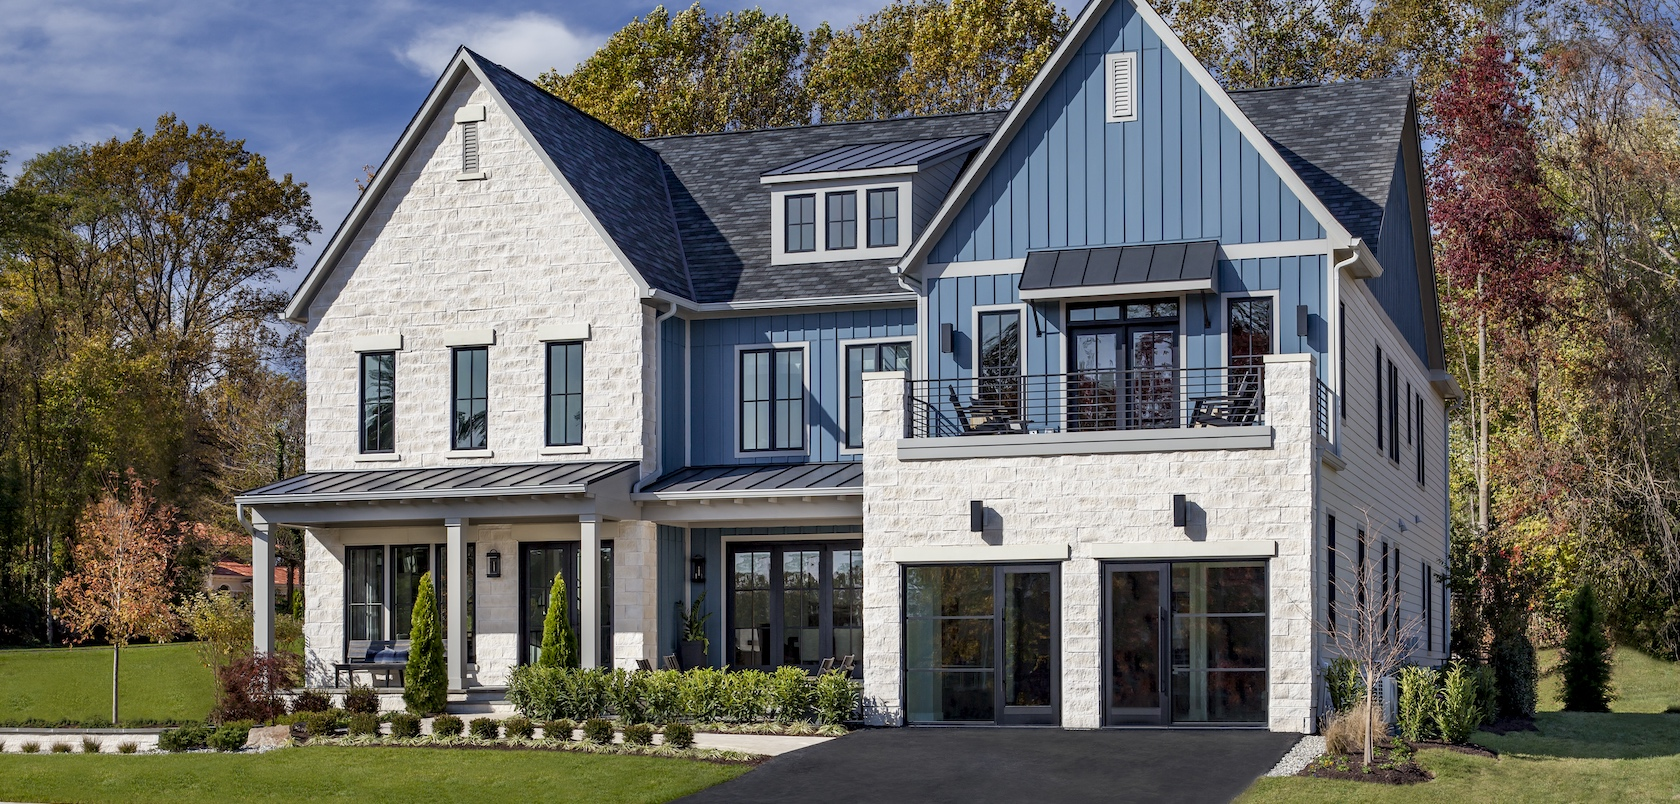 A modern farmhouse Toll Brother home with a light blue exterior color.